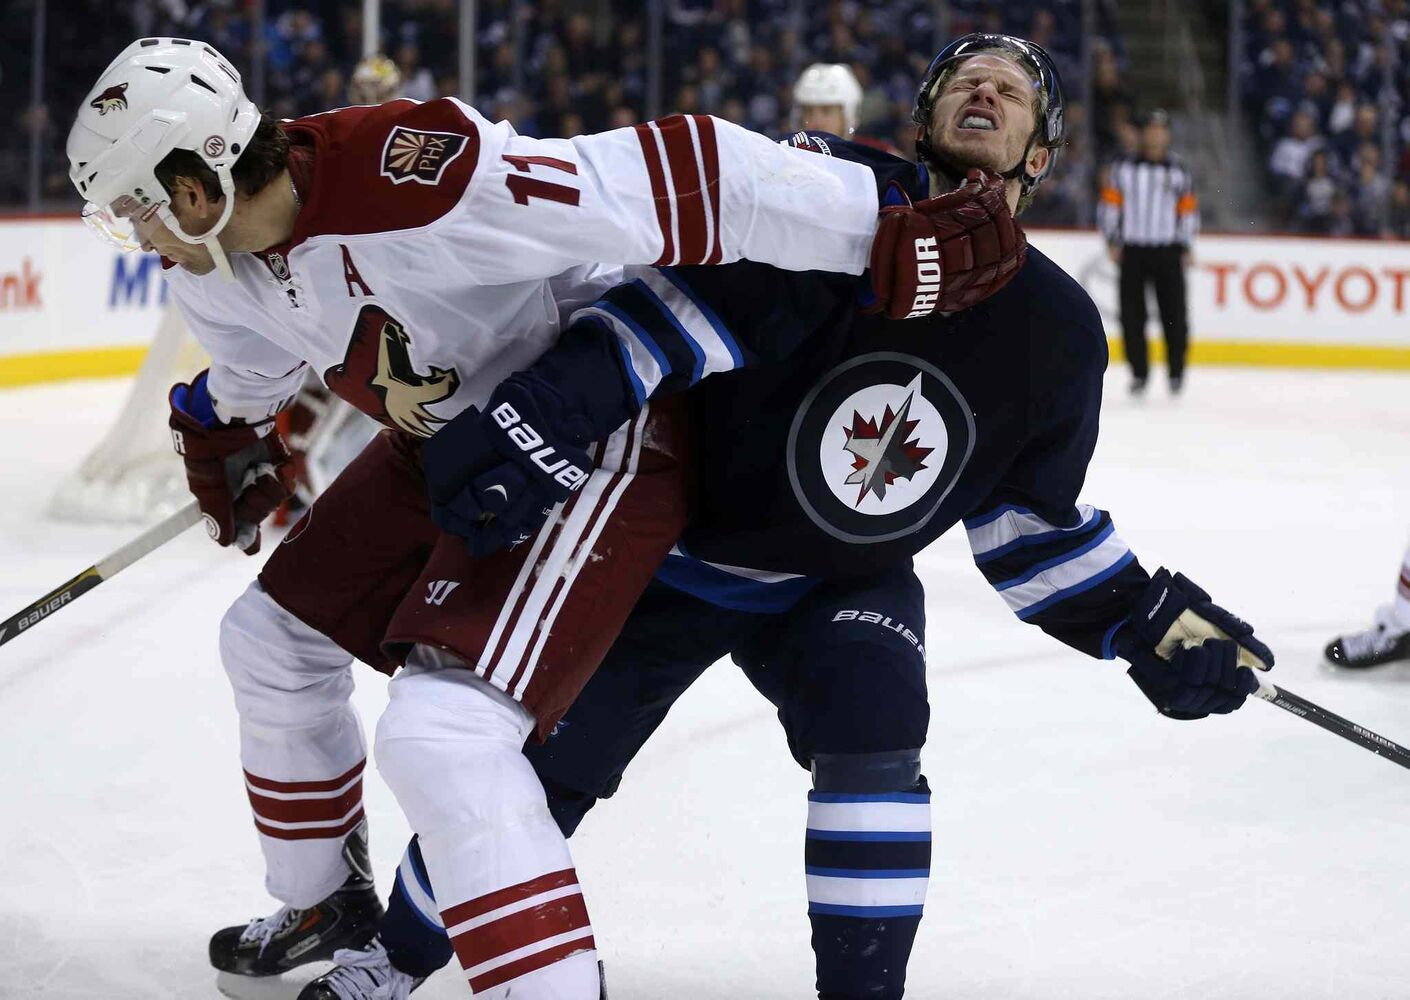 Coyotes Martin Hanzal (left) gives Winnipeg Jets' Bryan Little a forearm to the face. (Trevor Hagan / The Canadian Press)